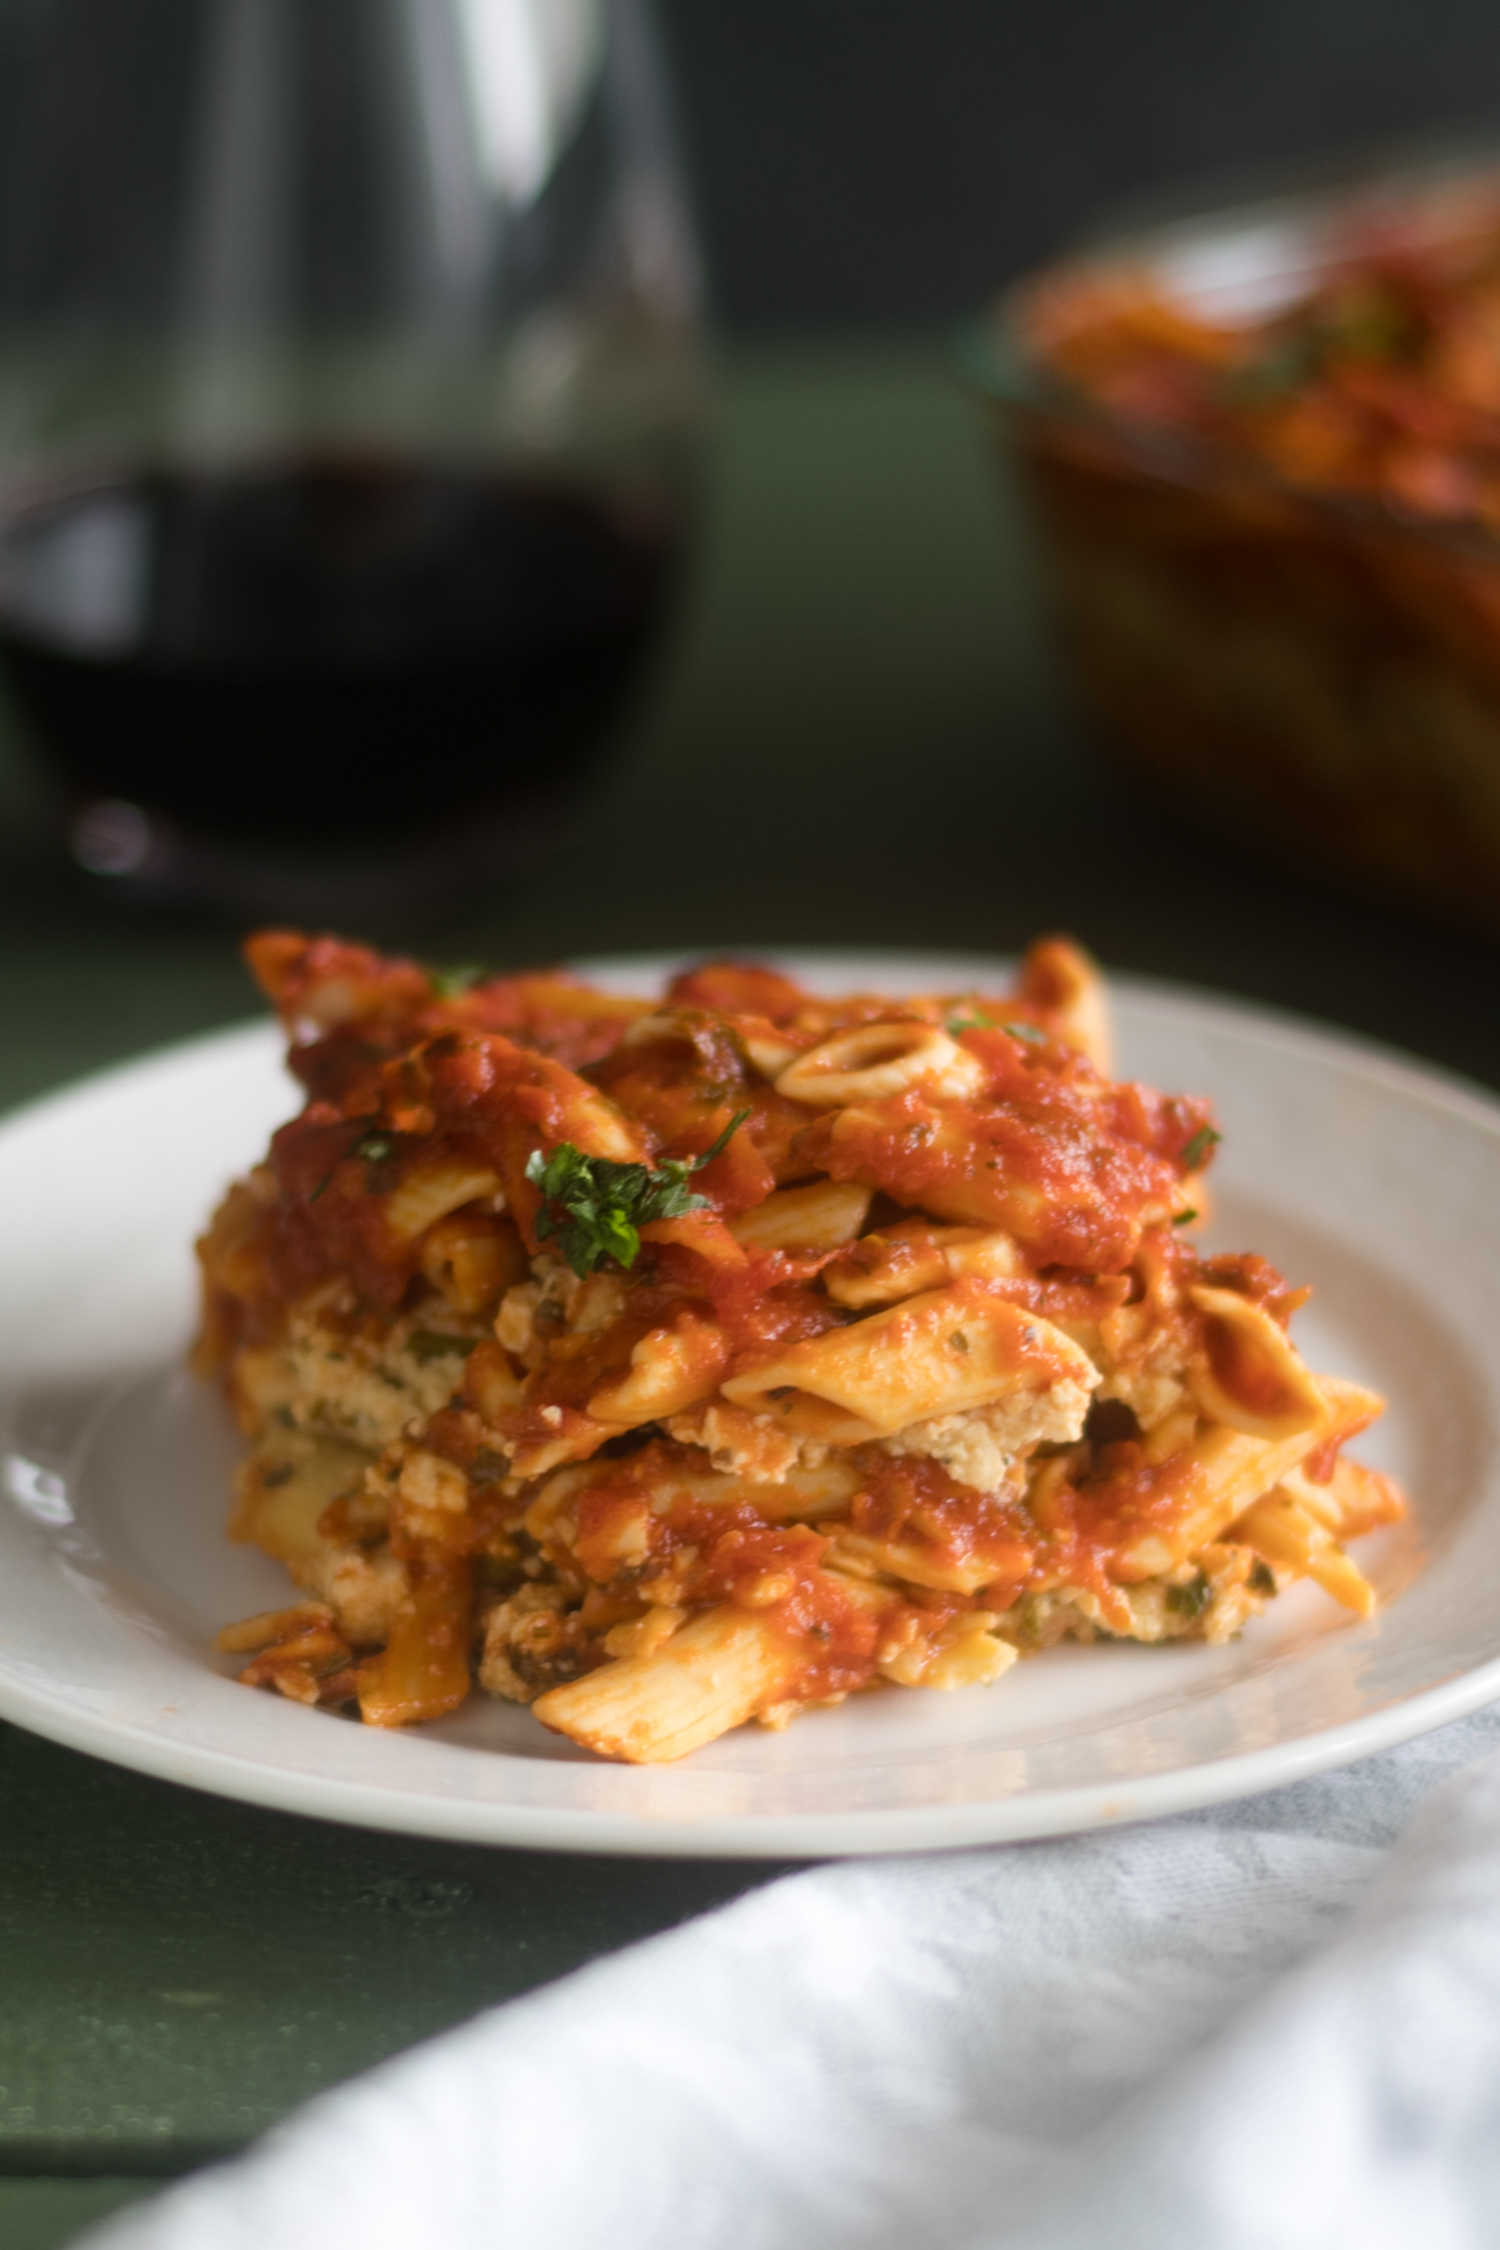 This Vegan Baked Pasta with Tofu Ricotta is perfect if you are looking for an easy, budget-friendly meal that is also delicious! #vegan #pasta #recipe #easyrecipes #food #vegetarian #casserole